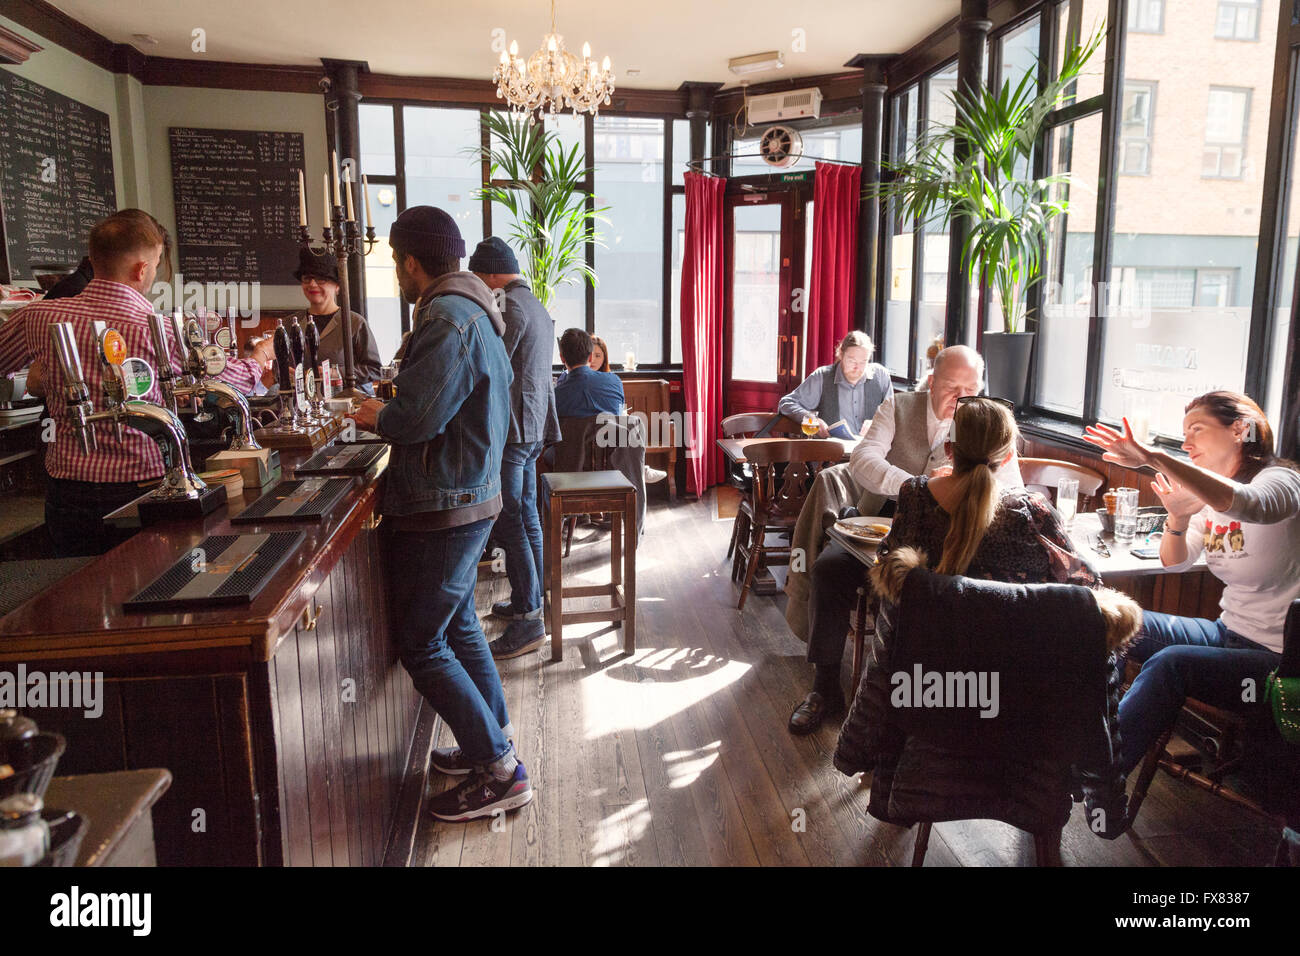 People drinking in the Carpenters Arms pub, Cheshire Street, Spitalfields, East End London UK (See also image FXD2YY) - Stock Image